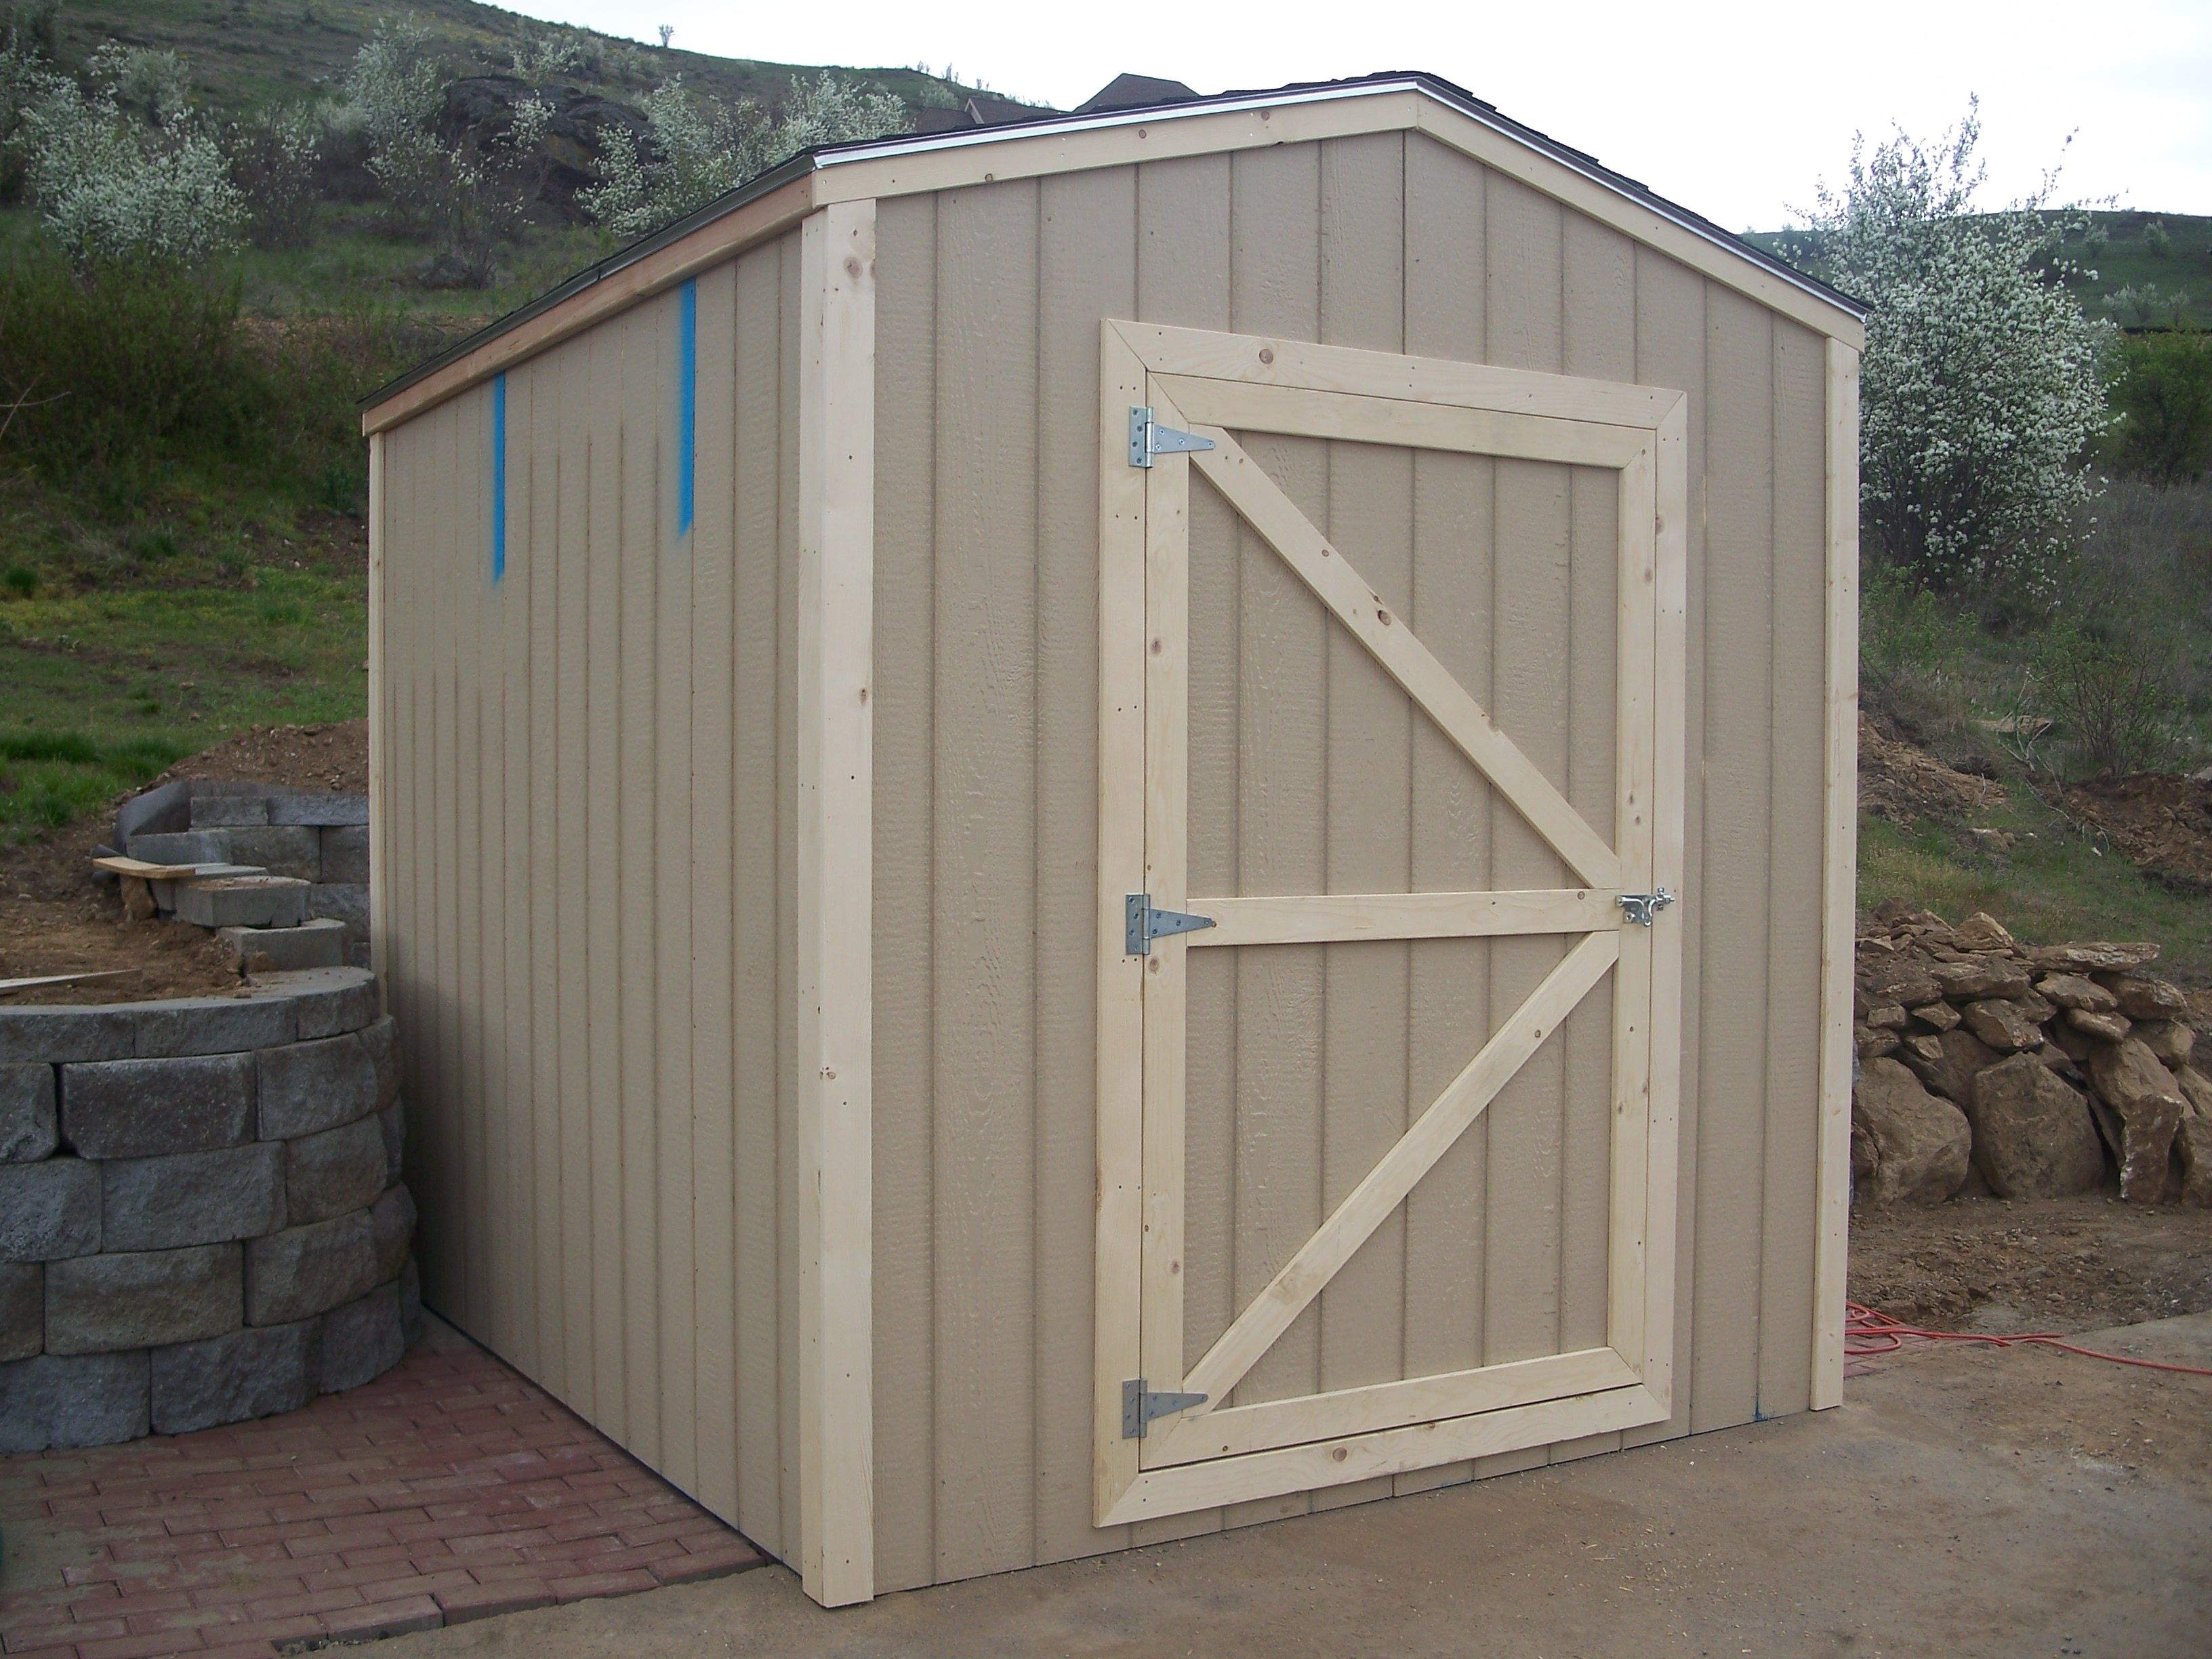 Shed doors double or single doors for garden sheds and storage sheds a visual bookmarking tool that helps you discover and save creative ideas these are